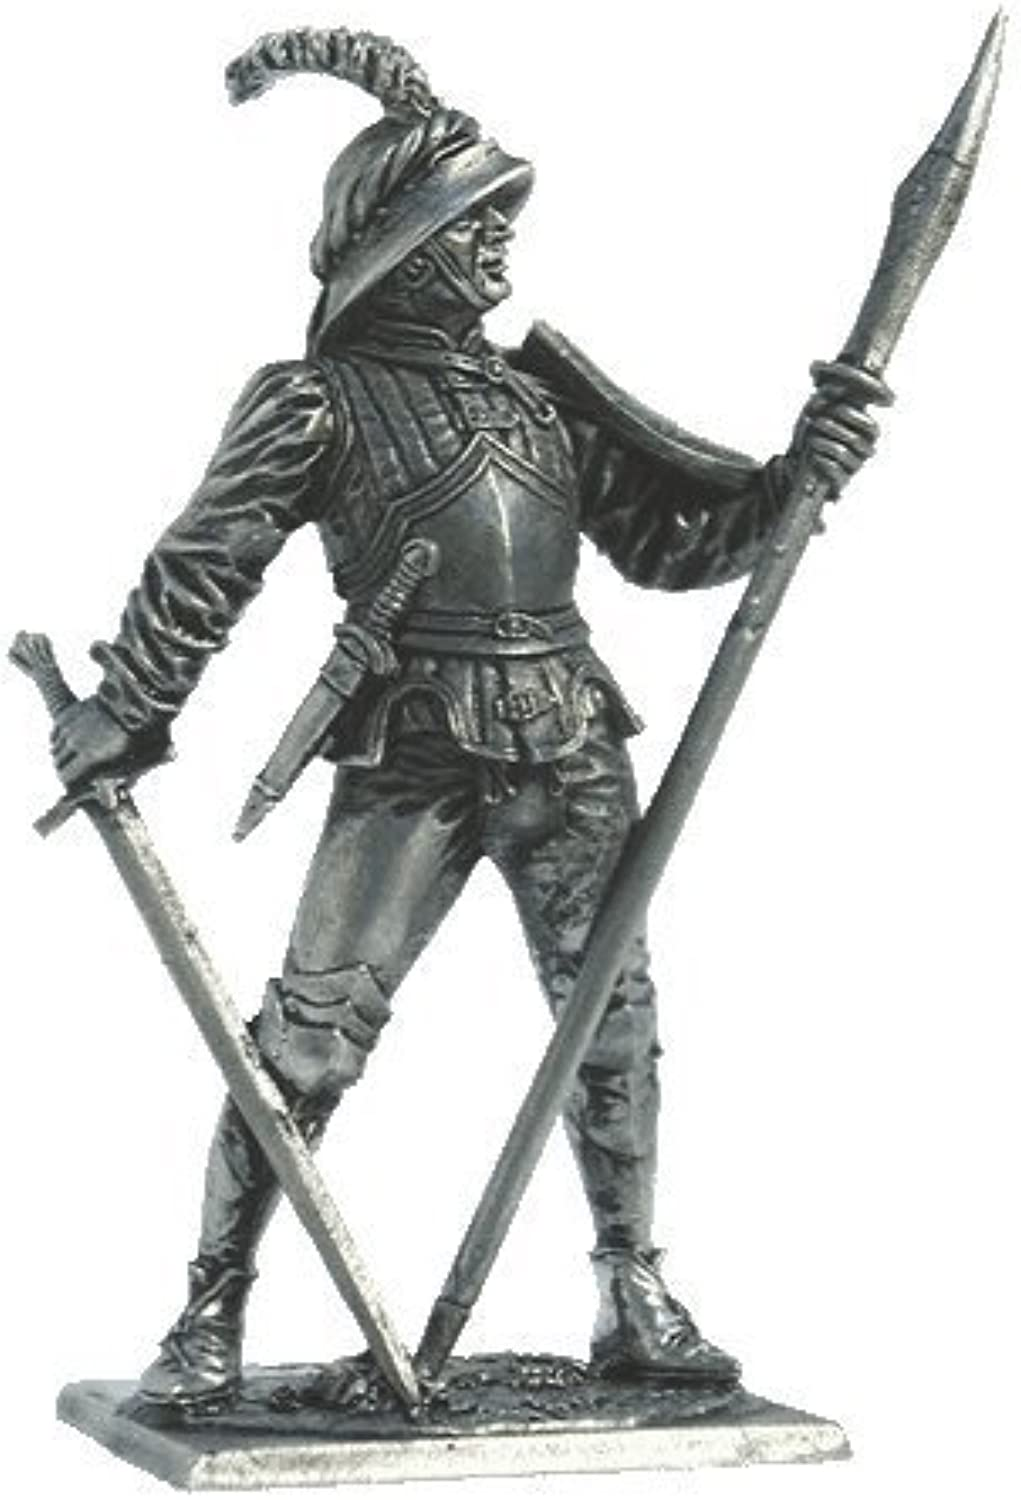 Swiss Foot Soldier Tin Toy Soldiers Metal Sculpture Miniature Figure Collection 54mm (Scale 1 32) (M169)